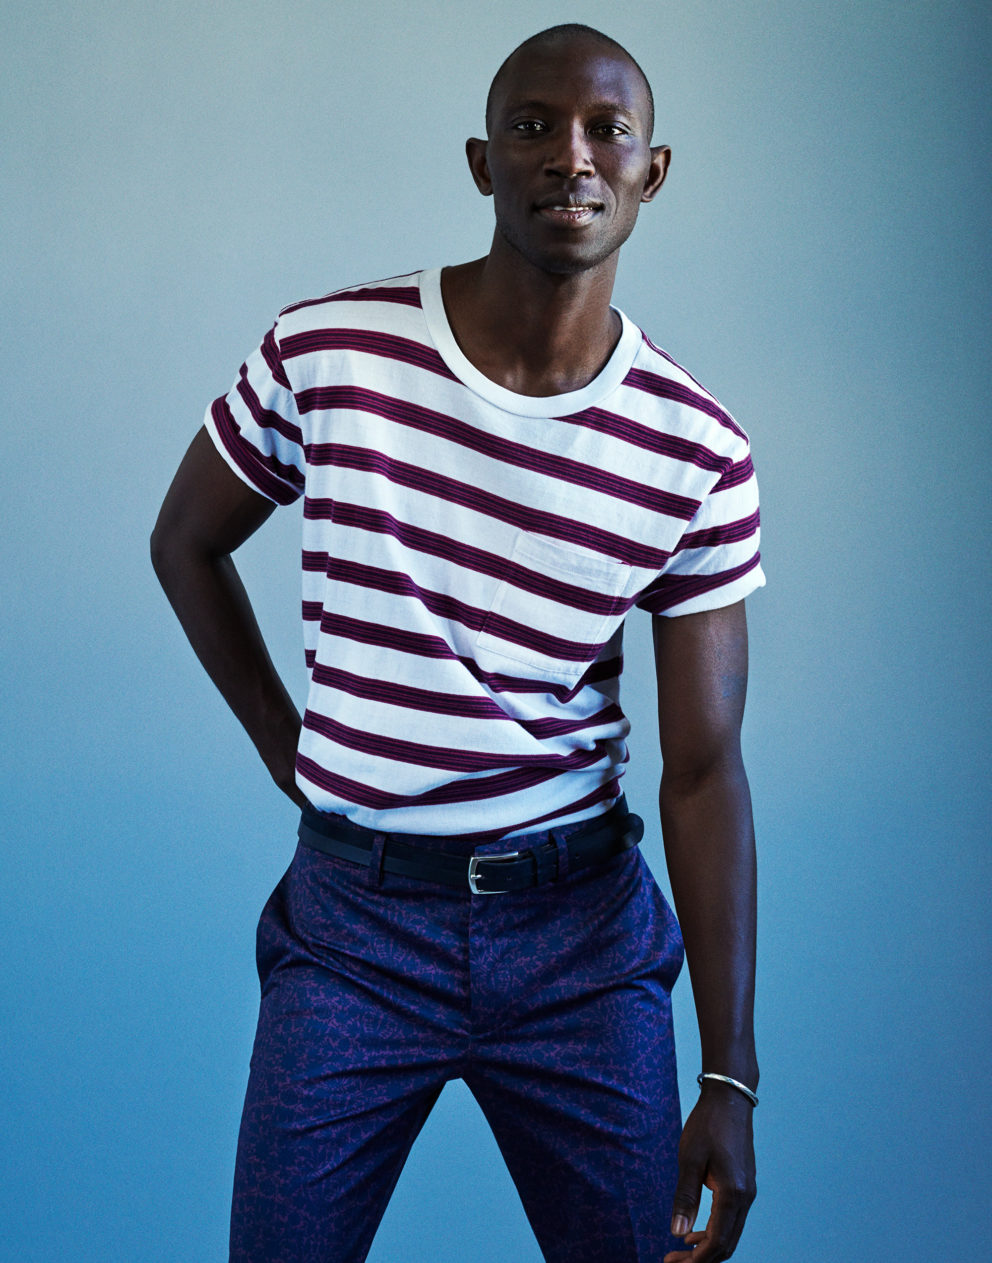 190626 0140 Bonobos Denim And Styleguide Armando Cabral 095 By Christian Hogstedt Web